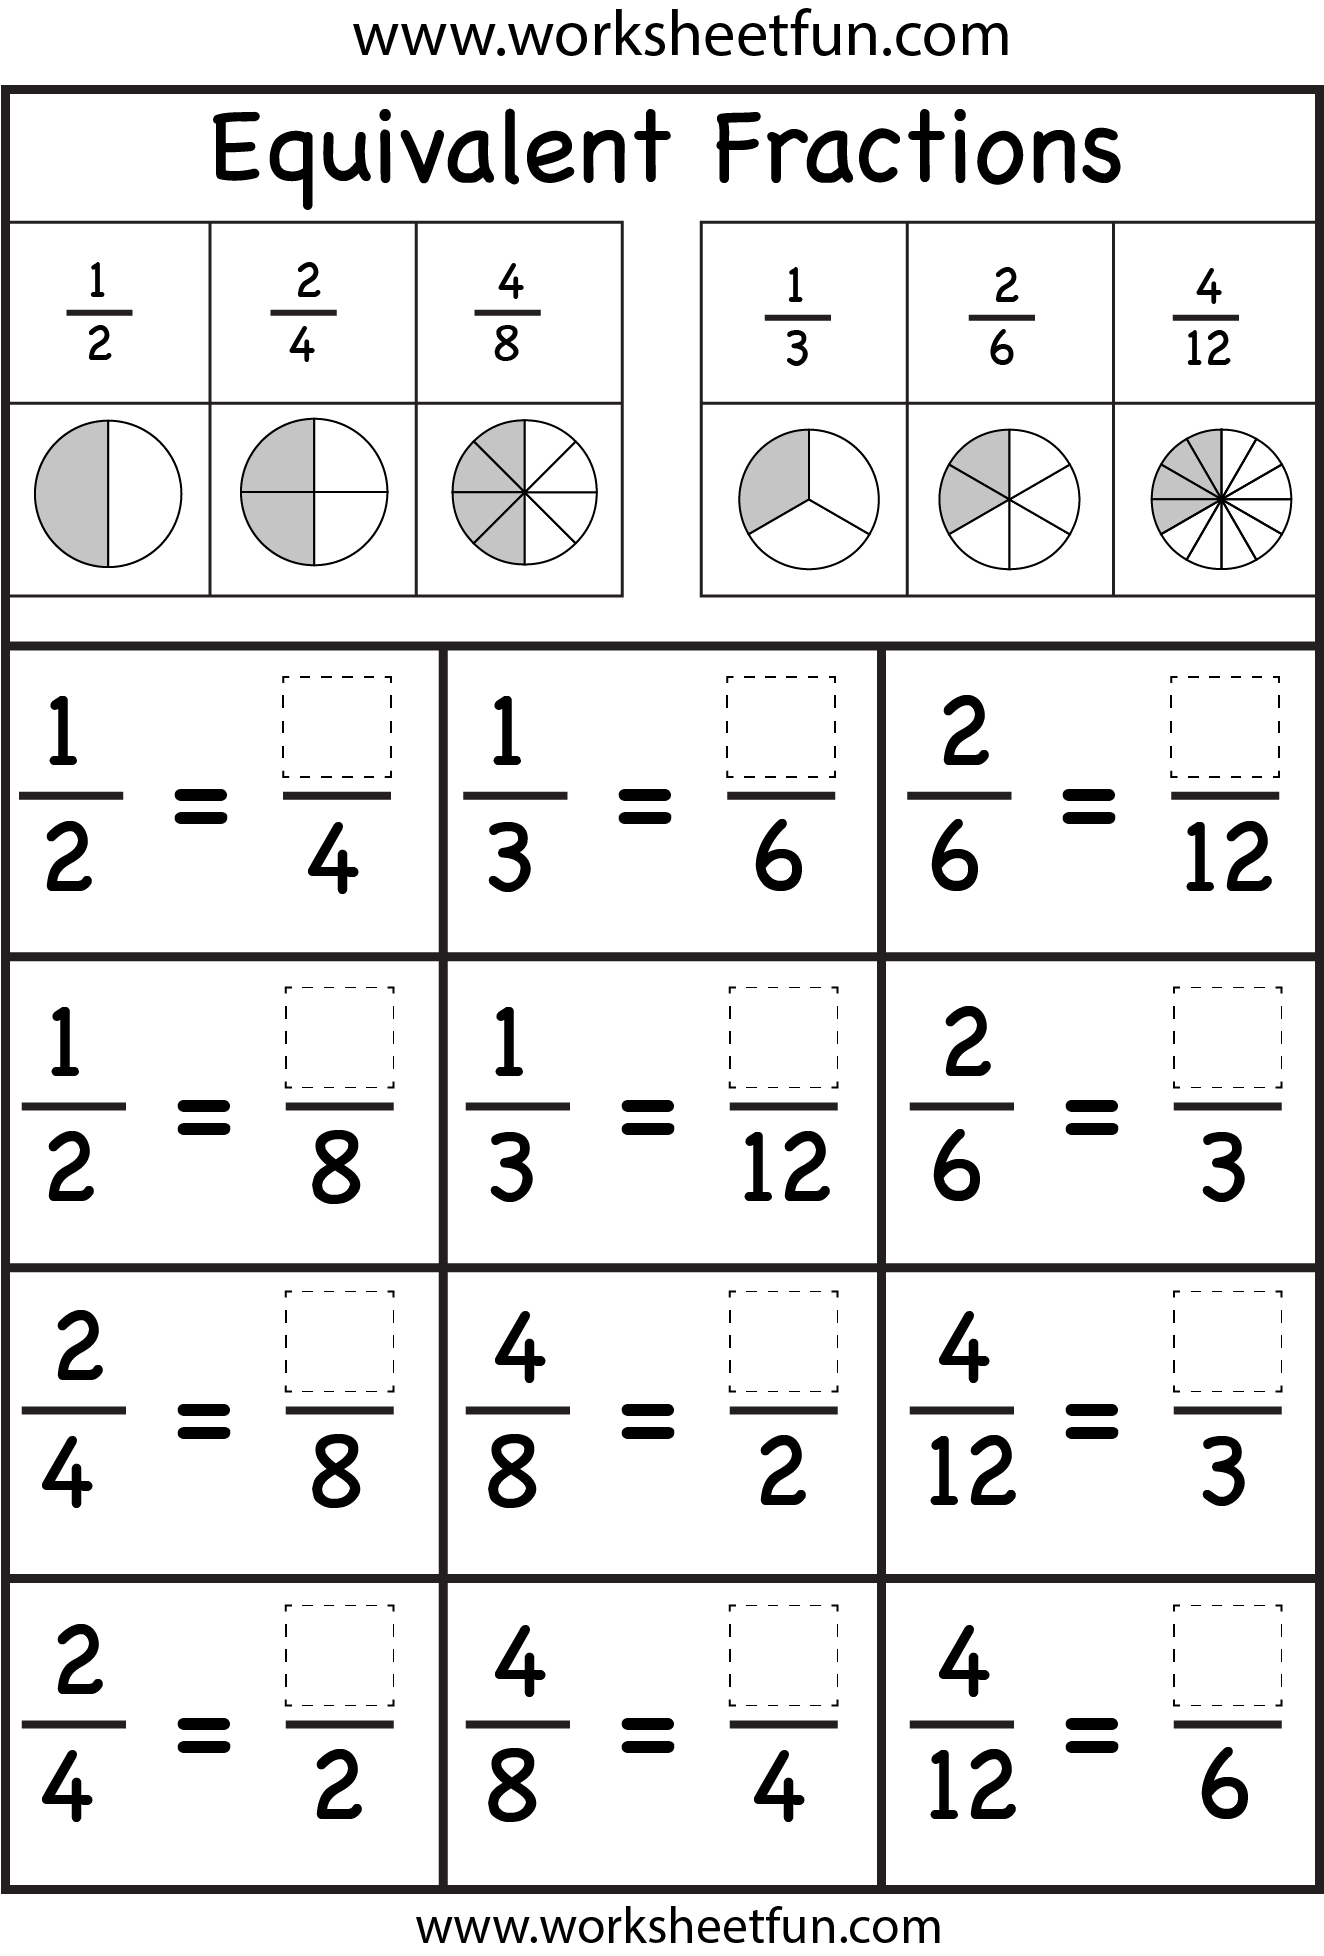 Equivalent Fractions Worksheet besides Free equivalent fractions worksheets with visual models likewise Best Ideas Of Fractions Fractions Worksheet Adding and Subtracting moreover Equivalent fractions  Ashley Walters Walters Walters Walters Walters additionally  as well Learnzillionquivalent Fractions 3rd Grade  paring Math Worksheets moreover Free worksheets for  paring or ordering fractions likewise Equivalent Fractions Worksheet besides  besides Math Fractions Worksheets 4th Sensational Grade  mon Core Sheets together with Fraction Worksheets   Free    monCoreSheets in addition Free equivalent fractions worksheets with visual models in addition Fraction Worksheets   Free    monCoreSheets besides Fractions Worksheets   Printable Fractions Worksheets for Teachers moreover Free equivalent fractions worksheets with visual models furthermore Free Equivalent Fractions Worksheets 5th Grade Fraction Worksheet 3. on equivalent fractions worksheet 4th grade